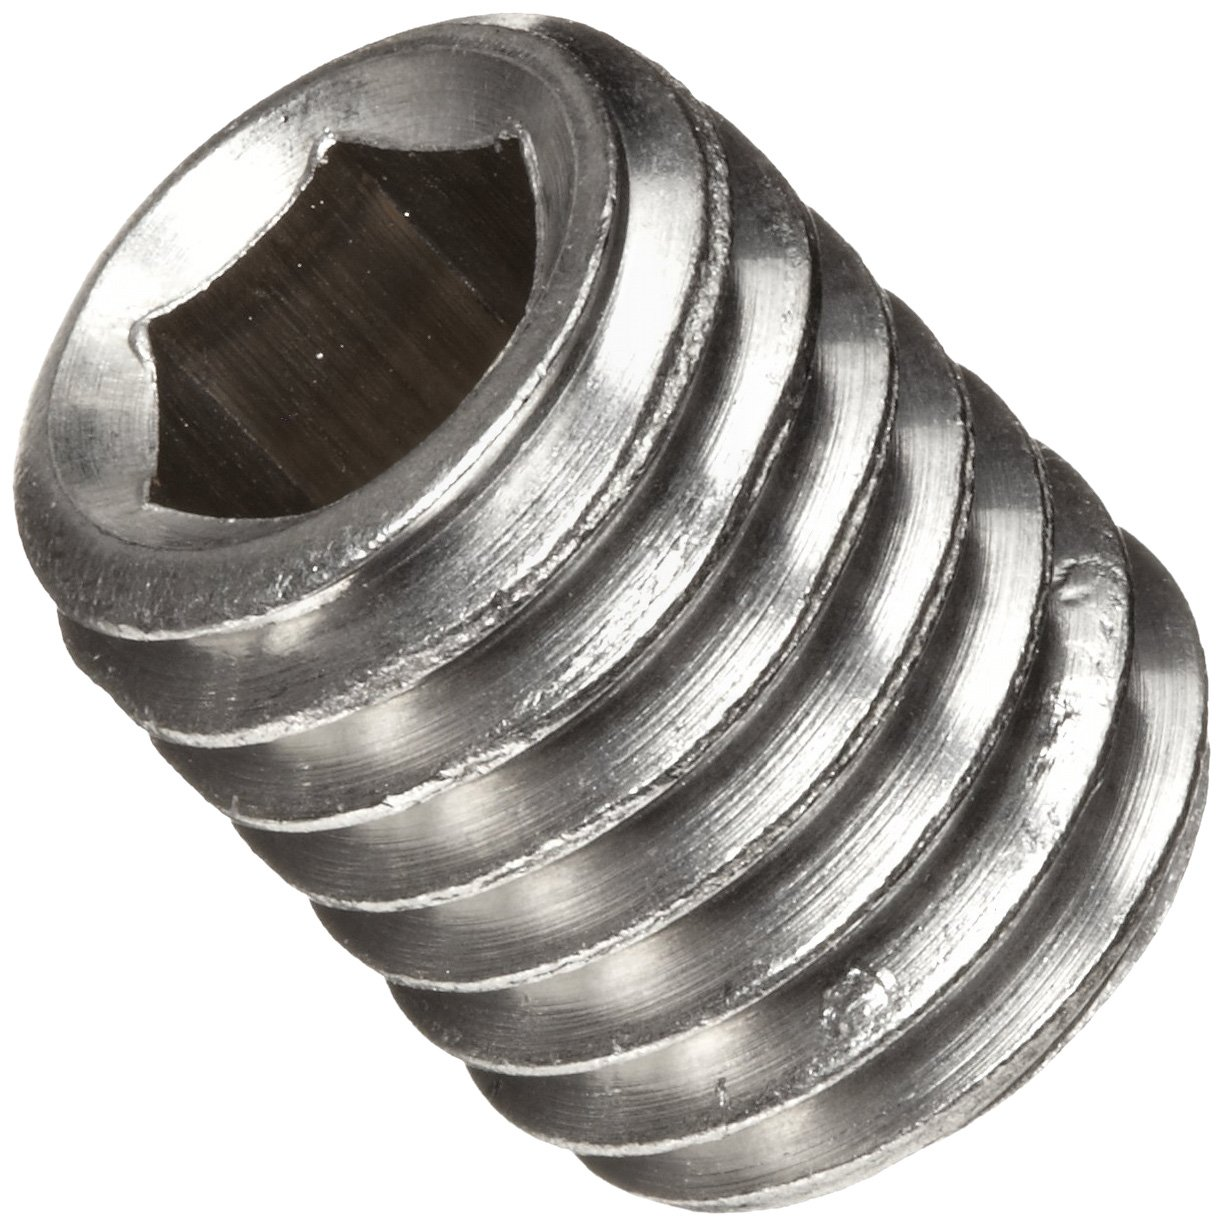 Steel Taper Pin Plain Finish 0.706 Large End Diameter 0.664 Small End Diameter 2 Length Pack of 5 2 Length Meets ASME B18.8.2 Small Parts B00EB1QANA Pack of 5 #10 Pin Size 0.706 Large End Diameter 0.664 Small End Diameter Standard Tolerance